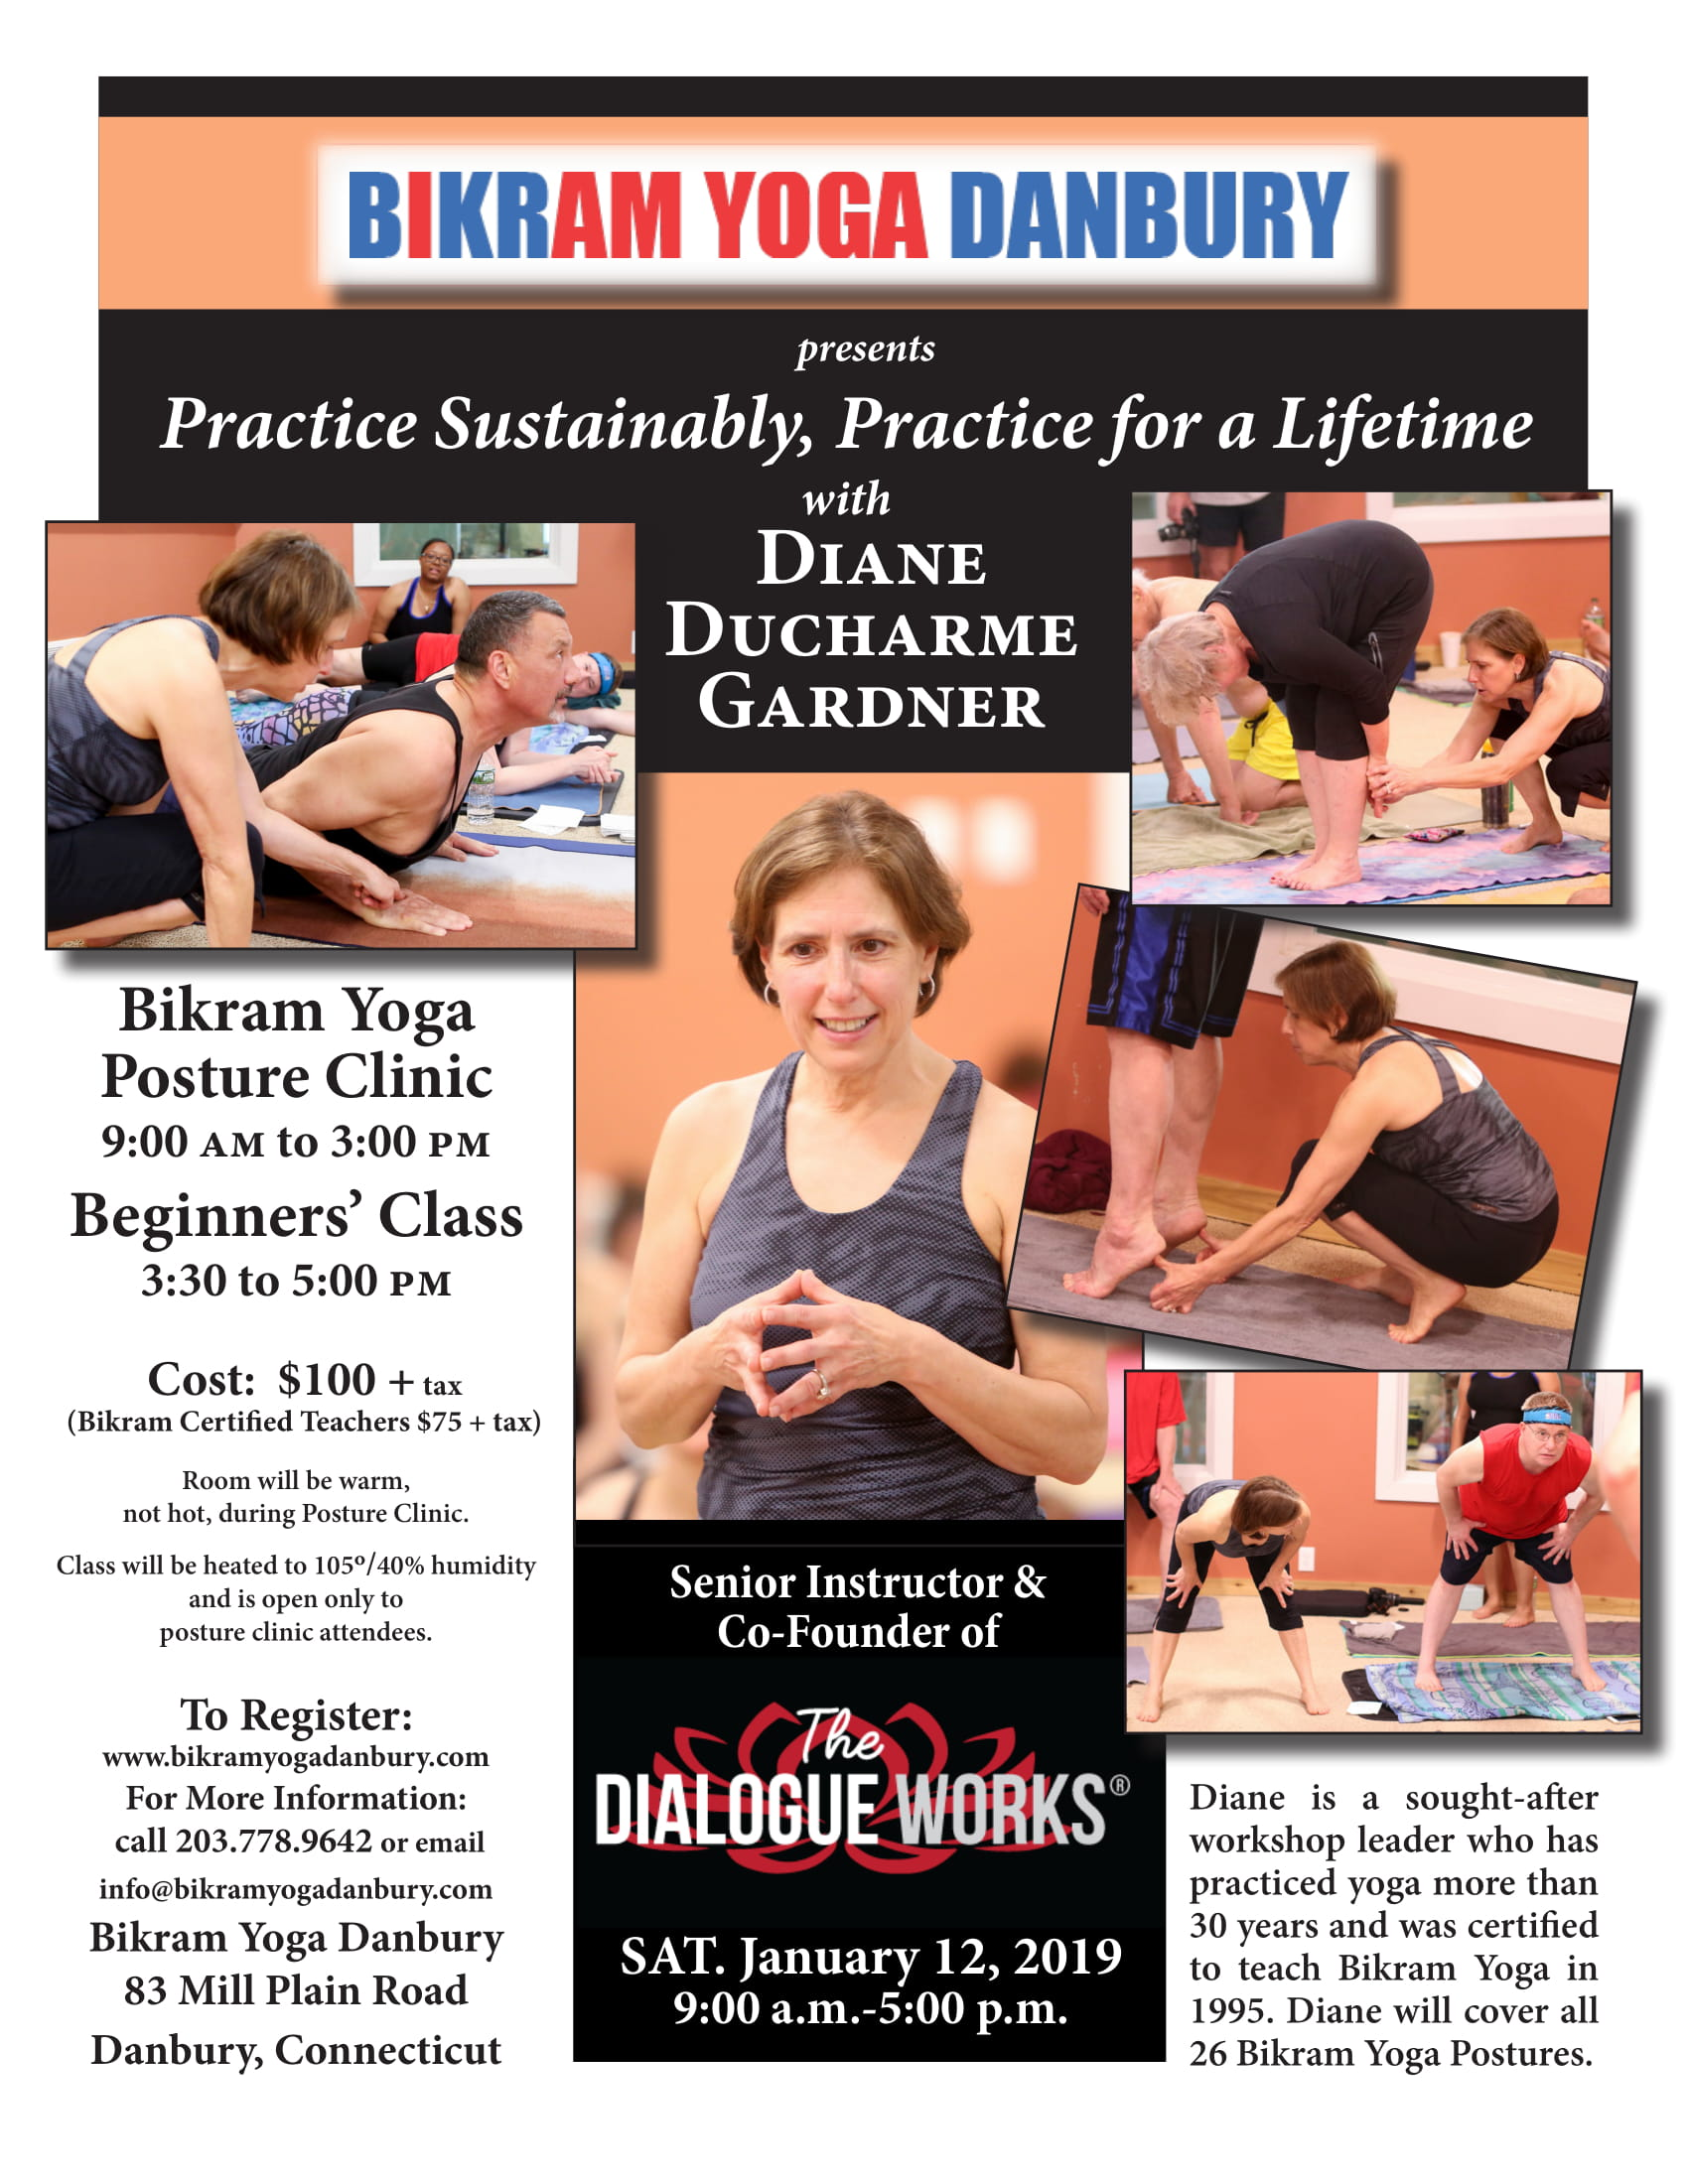 Pratice sustainably, Practice for a lifetime with Diane Ducharme Gardner – January 12, 2019